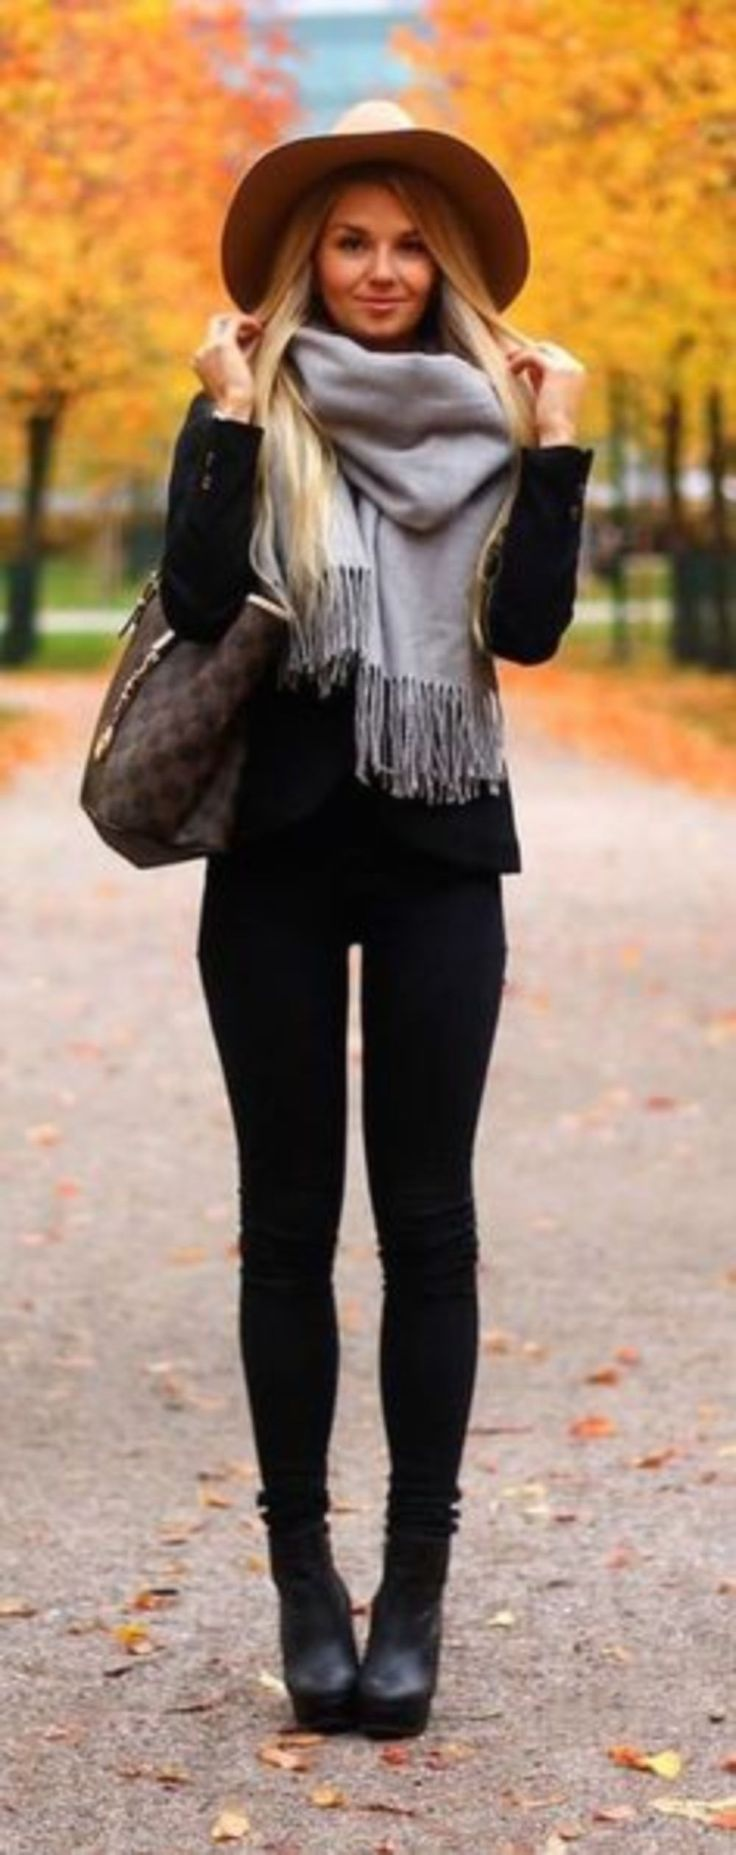 Amazing 39 Beautiful Autumn Outfits to Copy Right Now from https://www.fashionetter.com/2017/06/04/39-beautiful-autumn-outfits-copy-right-now/